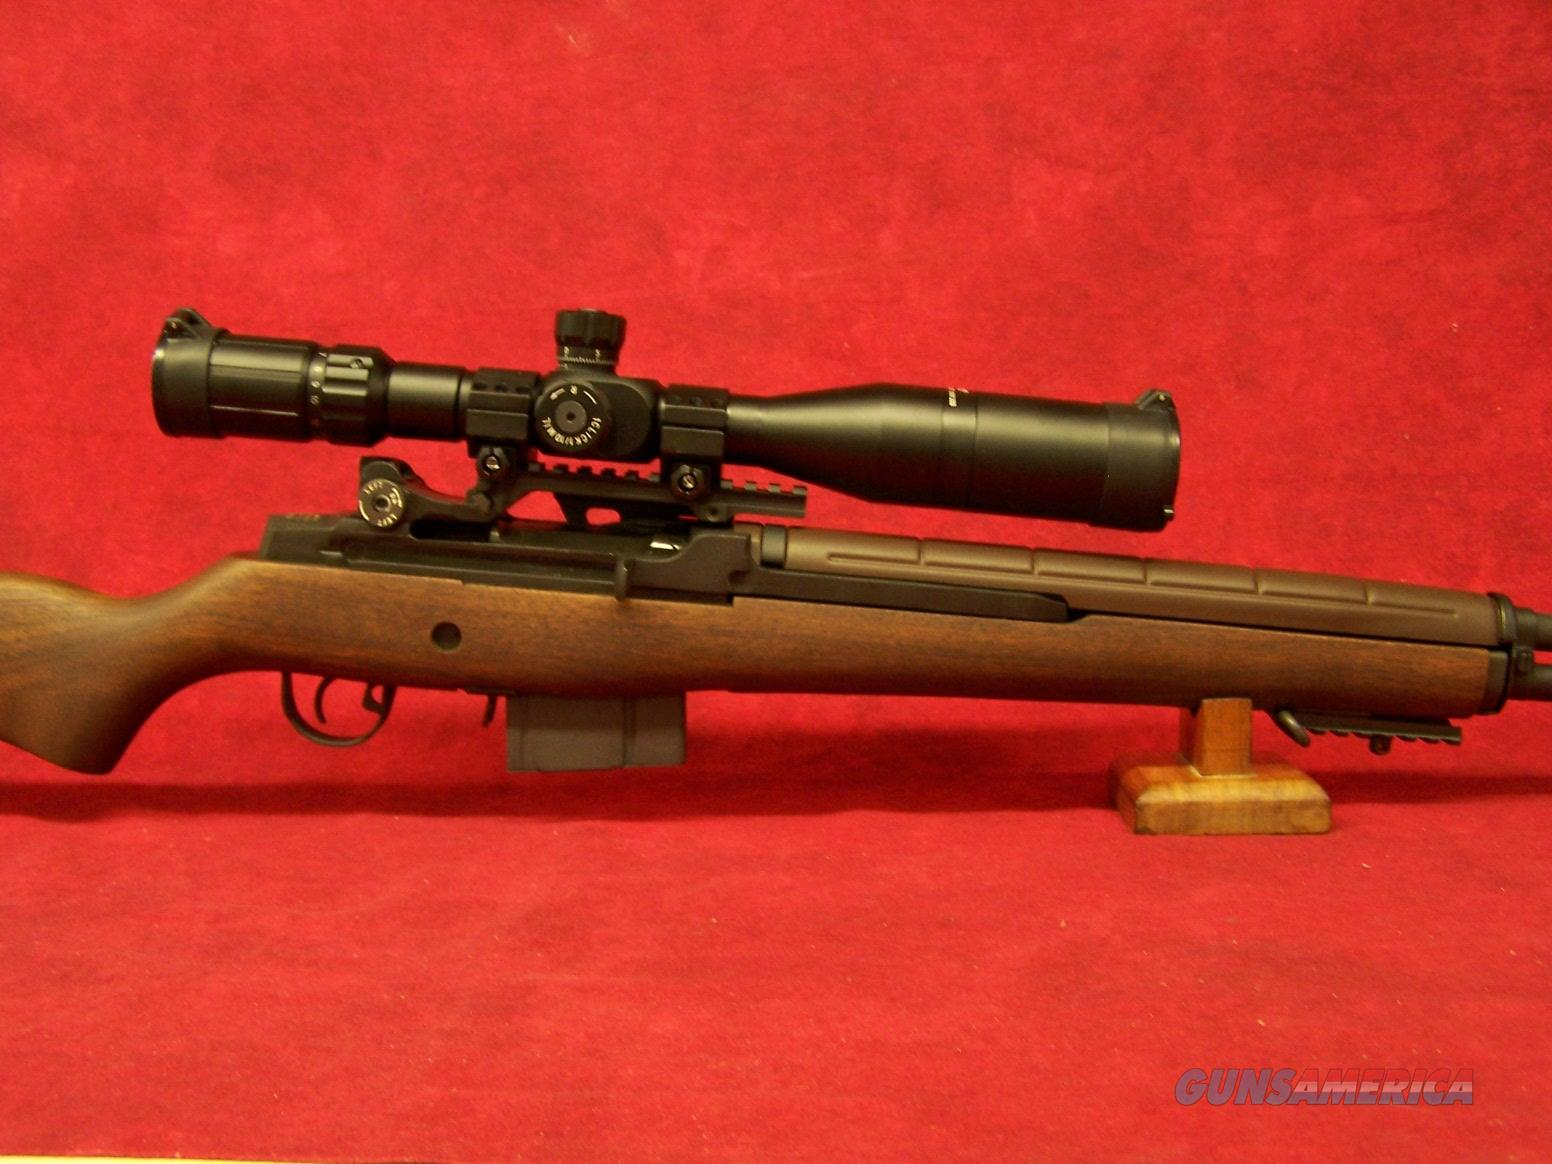 Springfield Armory M1A National Match Rifle Walnut/Chrome Moly  Barrel 7.62(308 win)(NA9102) with Accessories  Guns > Rifles > Springfield Armory Rifles > M1A/M14